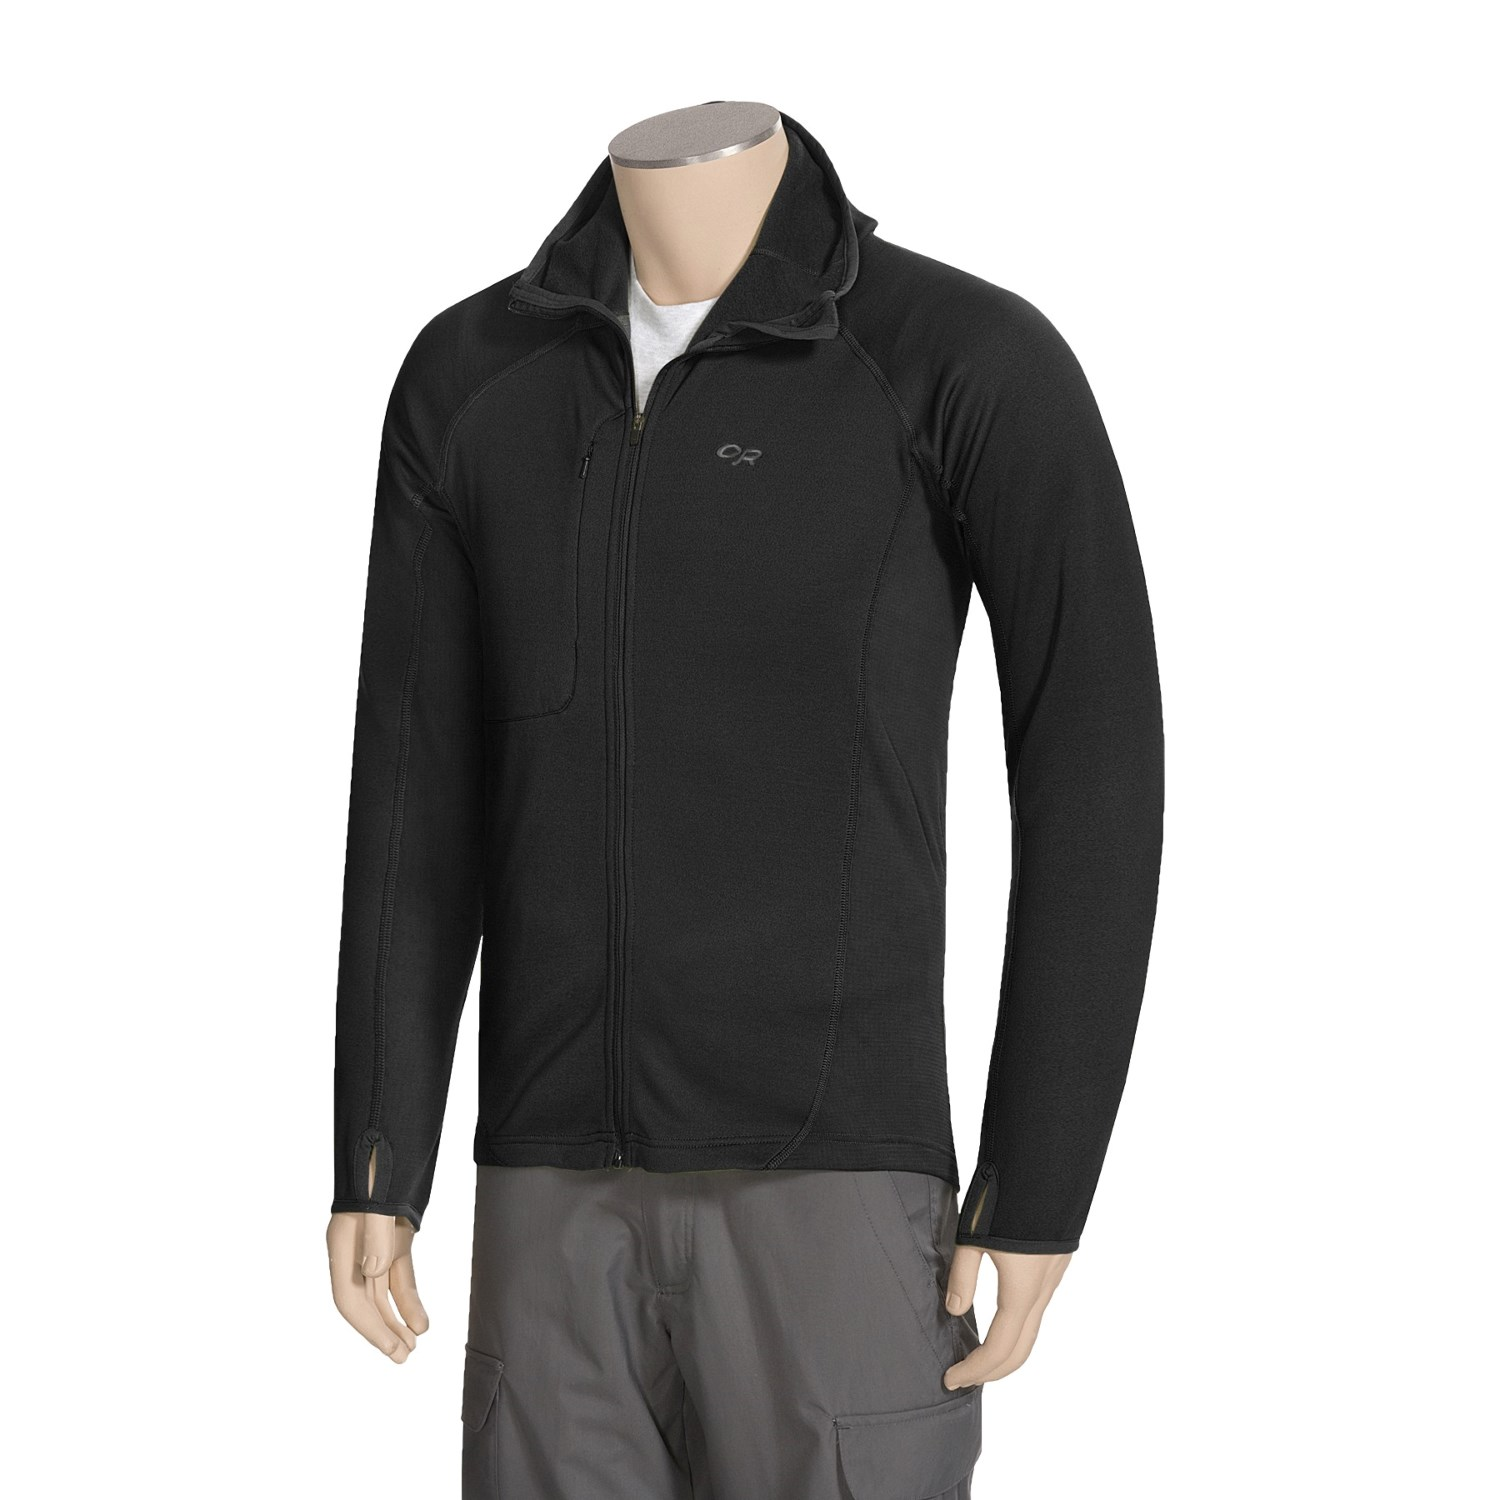 Outdoor research radiant hybrid hoody